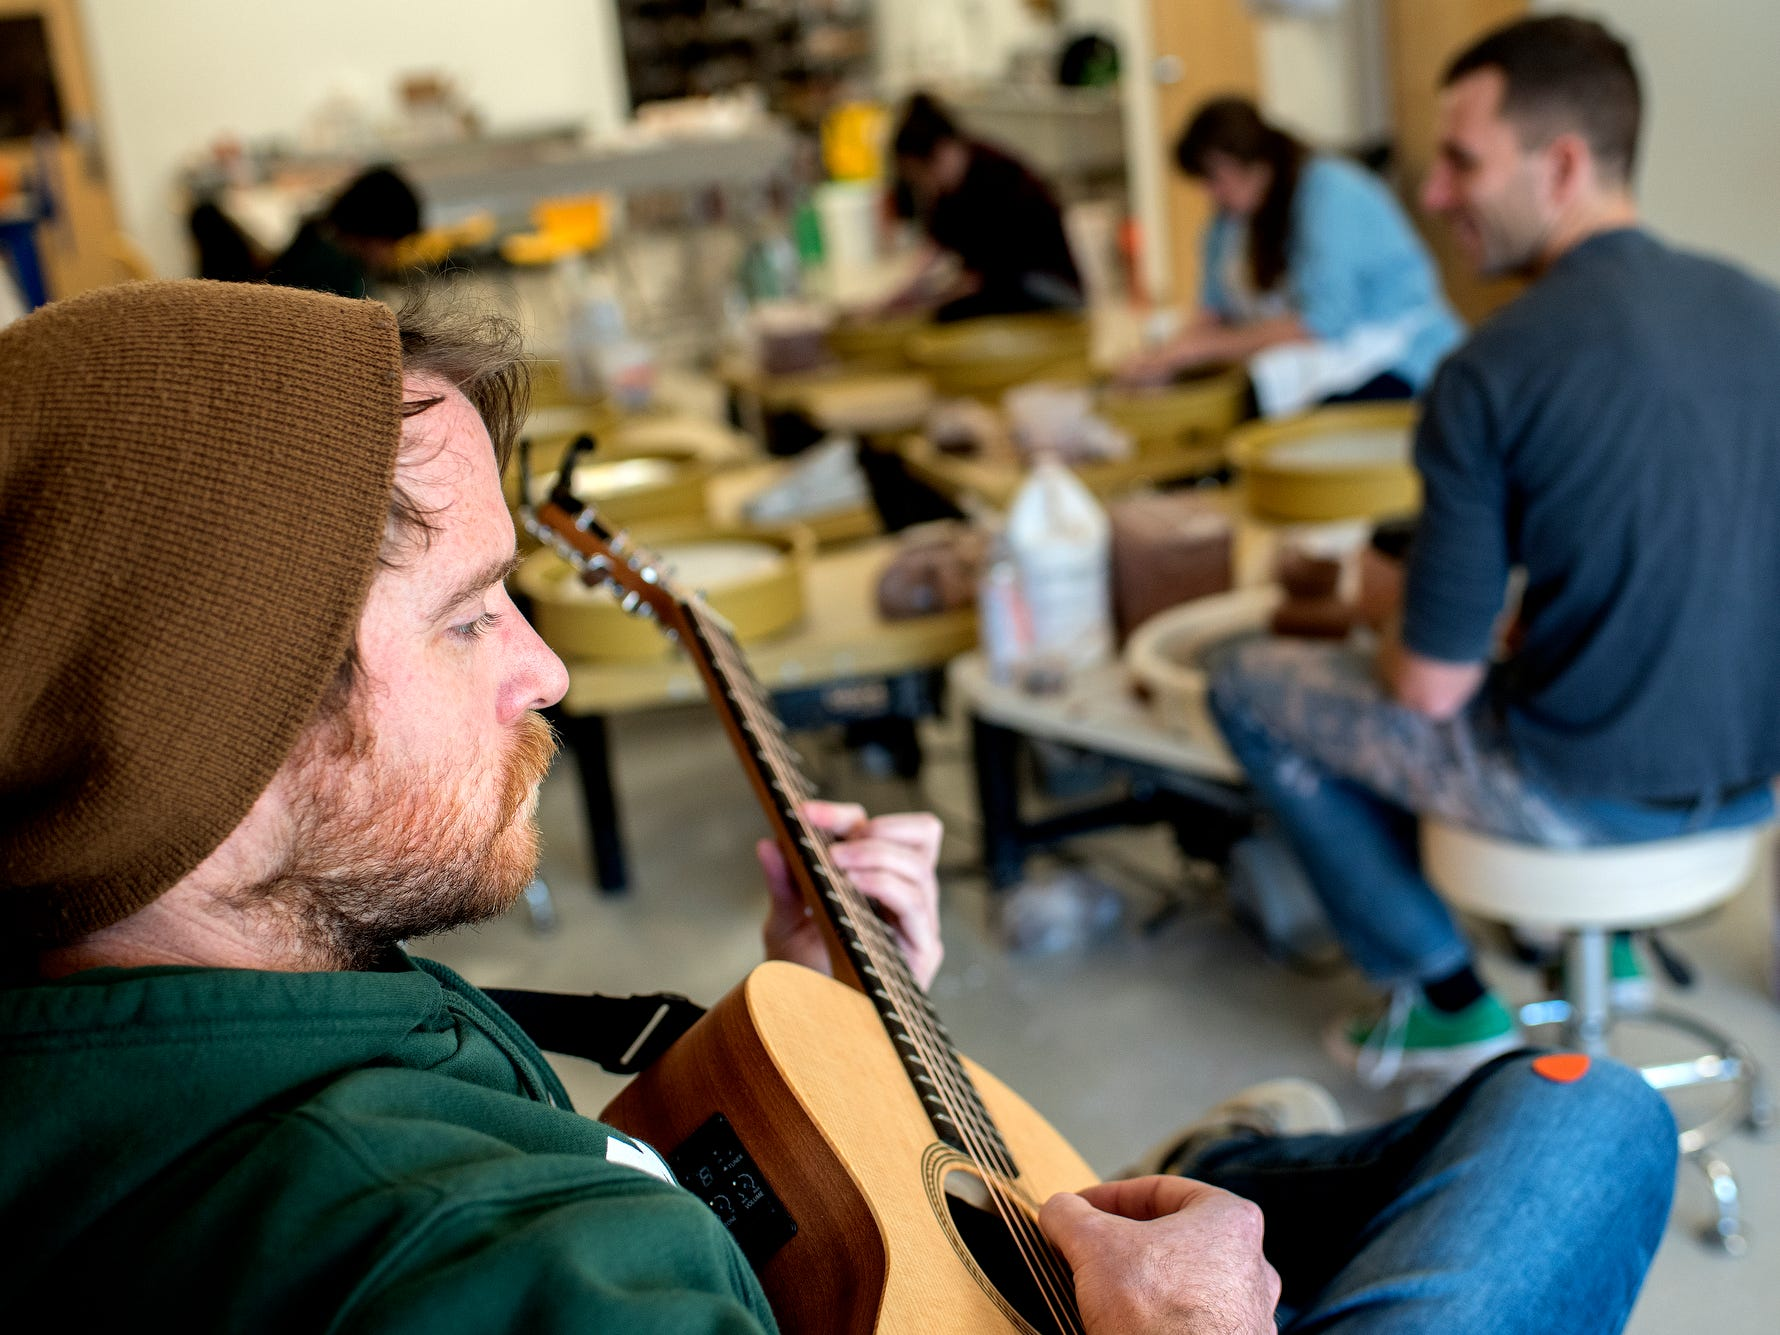 Mike McConeghy plays music at his friend Dan Nunez's business the Wheel House Studio on Wednesday, Nov. 14, 2018, in Lansing.